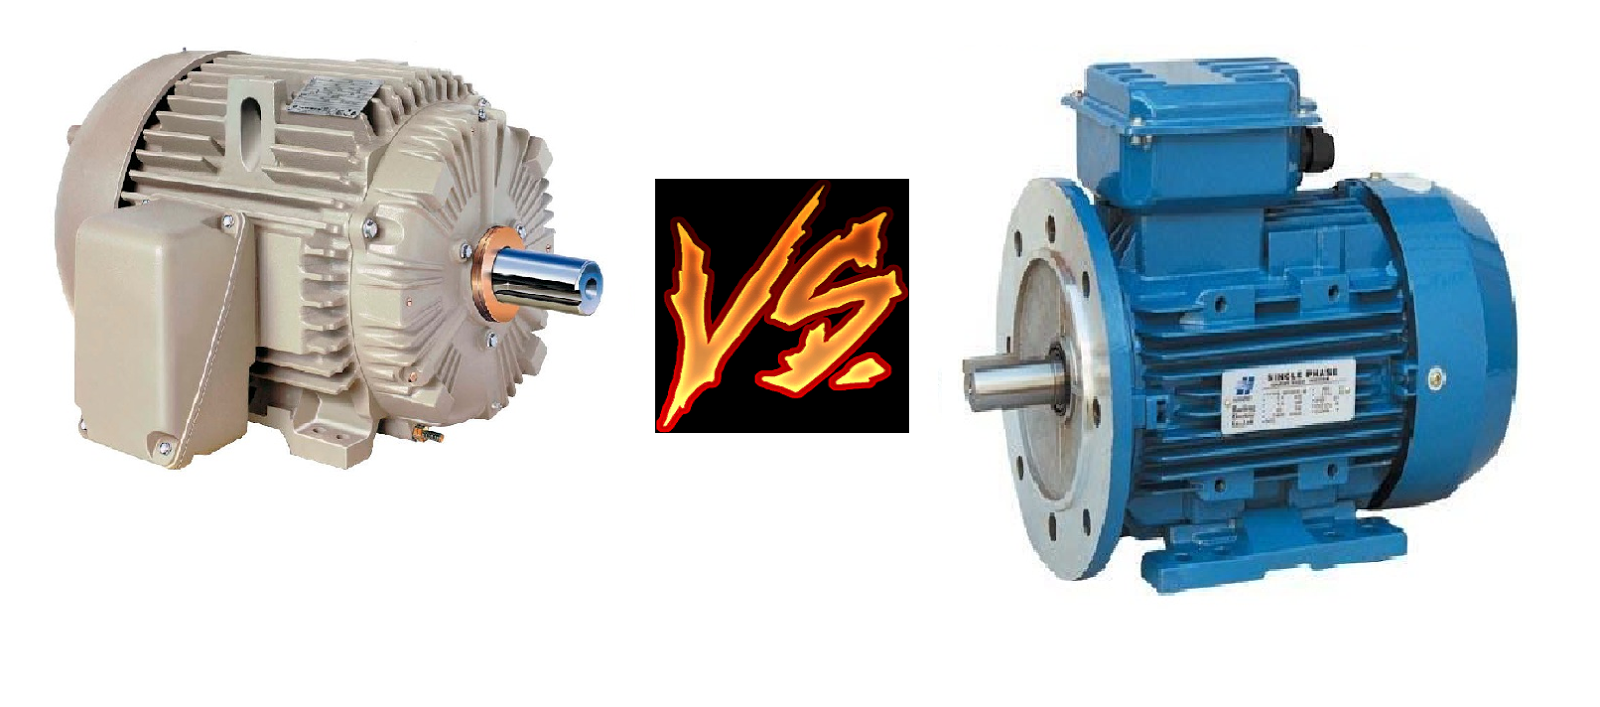 Comparison Between 1 Phase And 3 Phase Motors Motor Hp